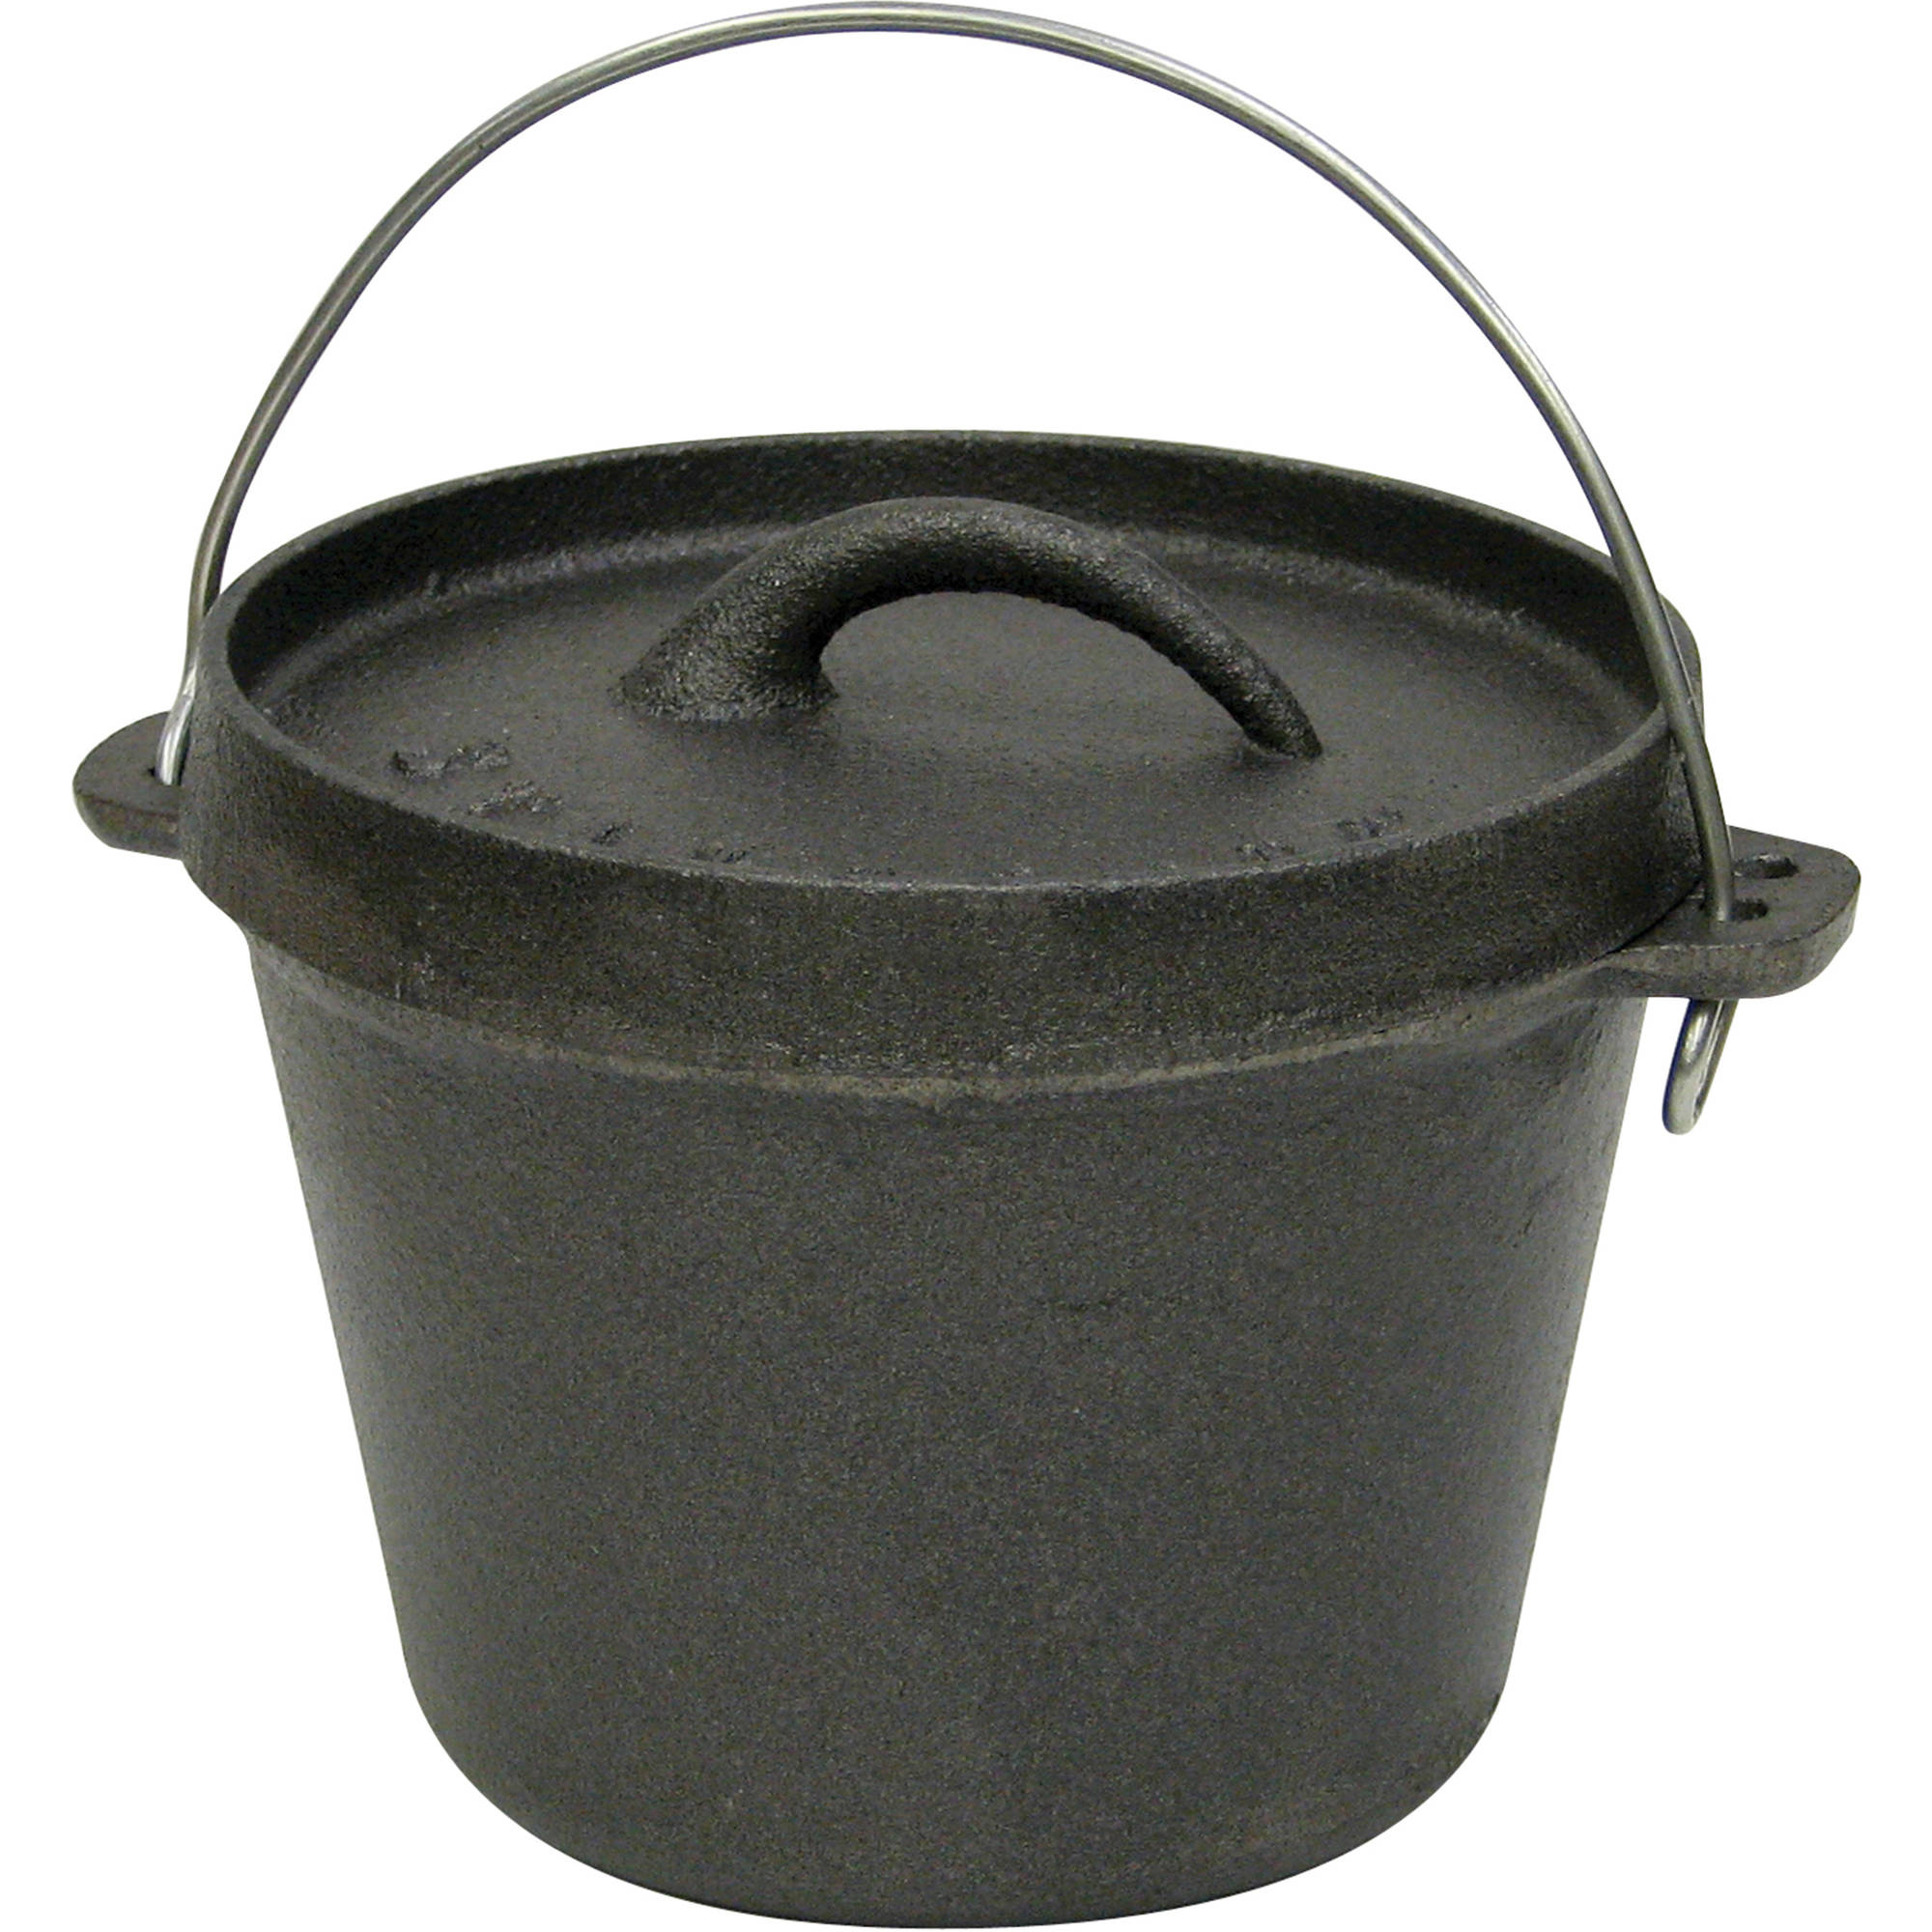 Stansport Cast Iron Dutch Oven, Without Legs